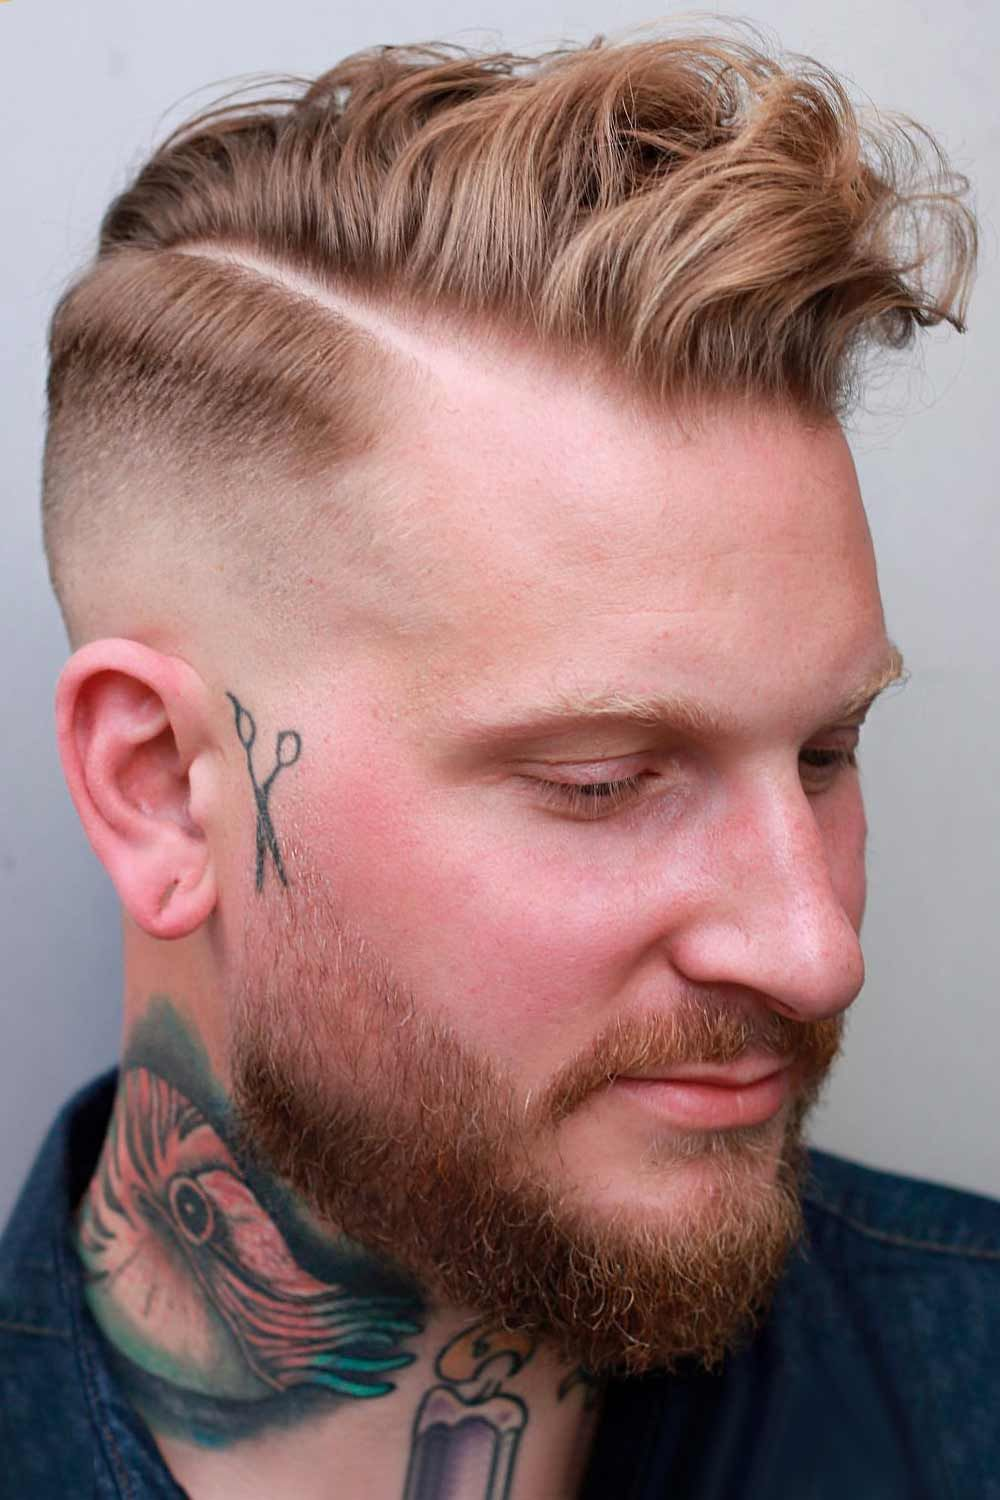 Awesome Disconnected Undercut Hairstyle Ideas You Should Give A Go In 2020 Undercut Hairstyles Long Hair Styles Men Short Hair Styles